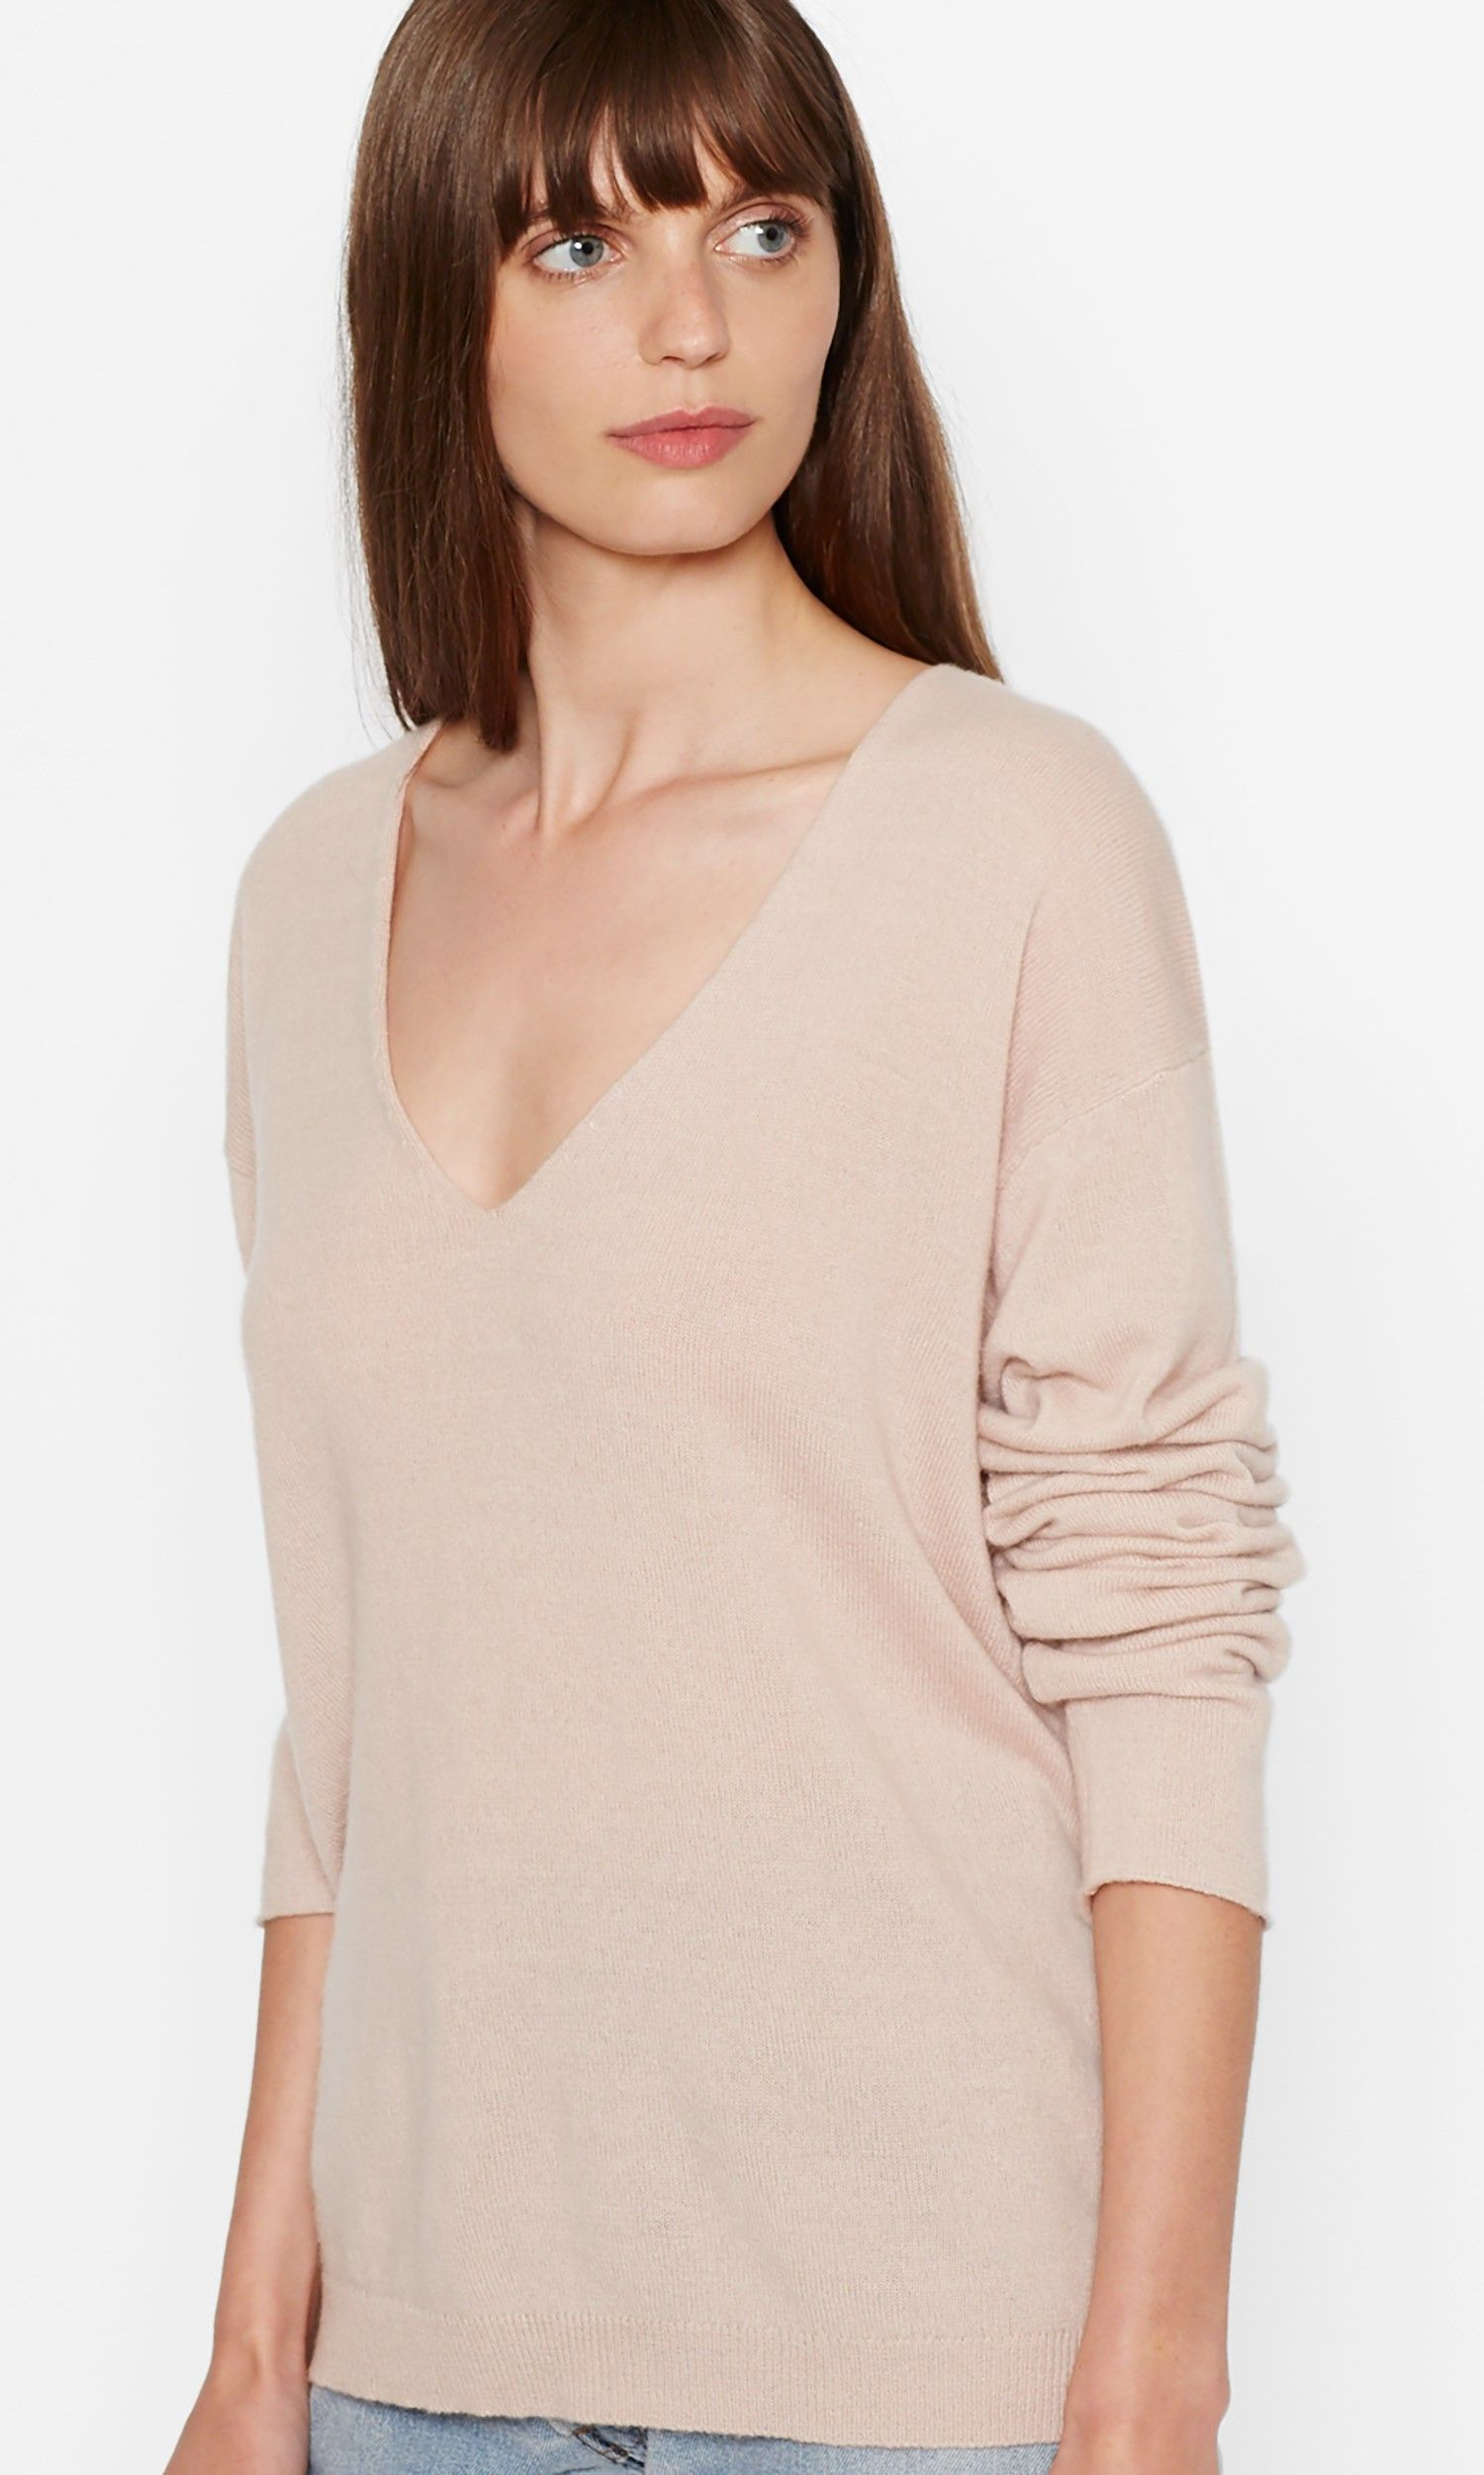 Elaine v-neck cashmere sweater | Dress tops, Sweater skirt and ...